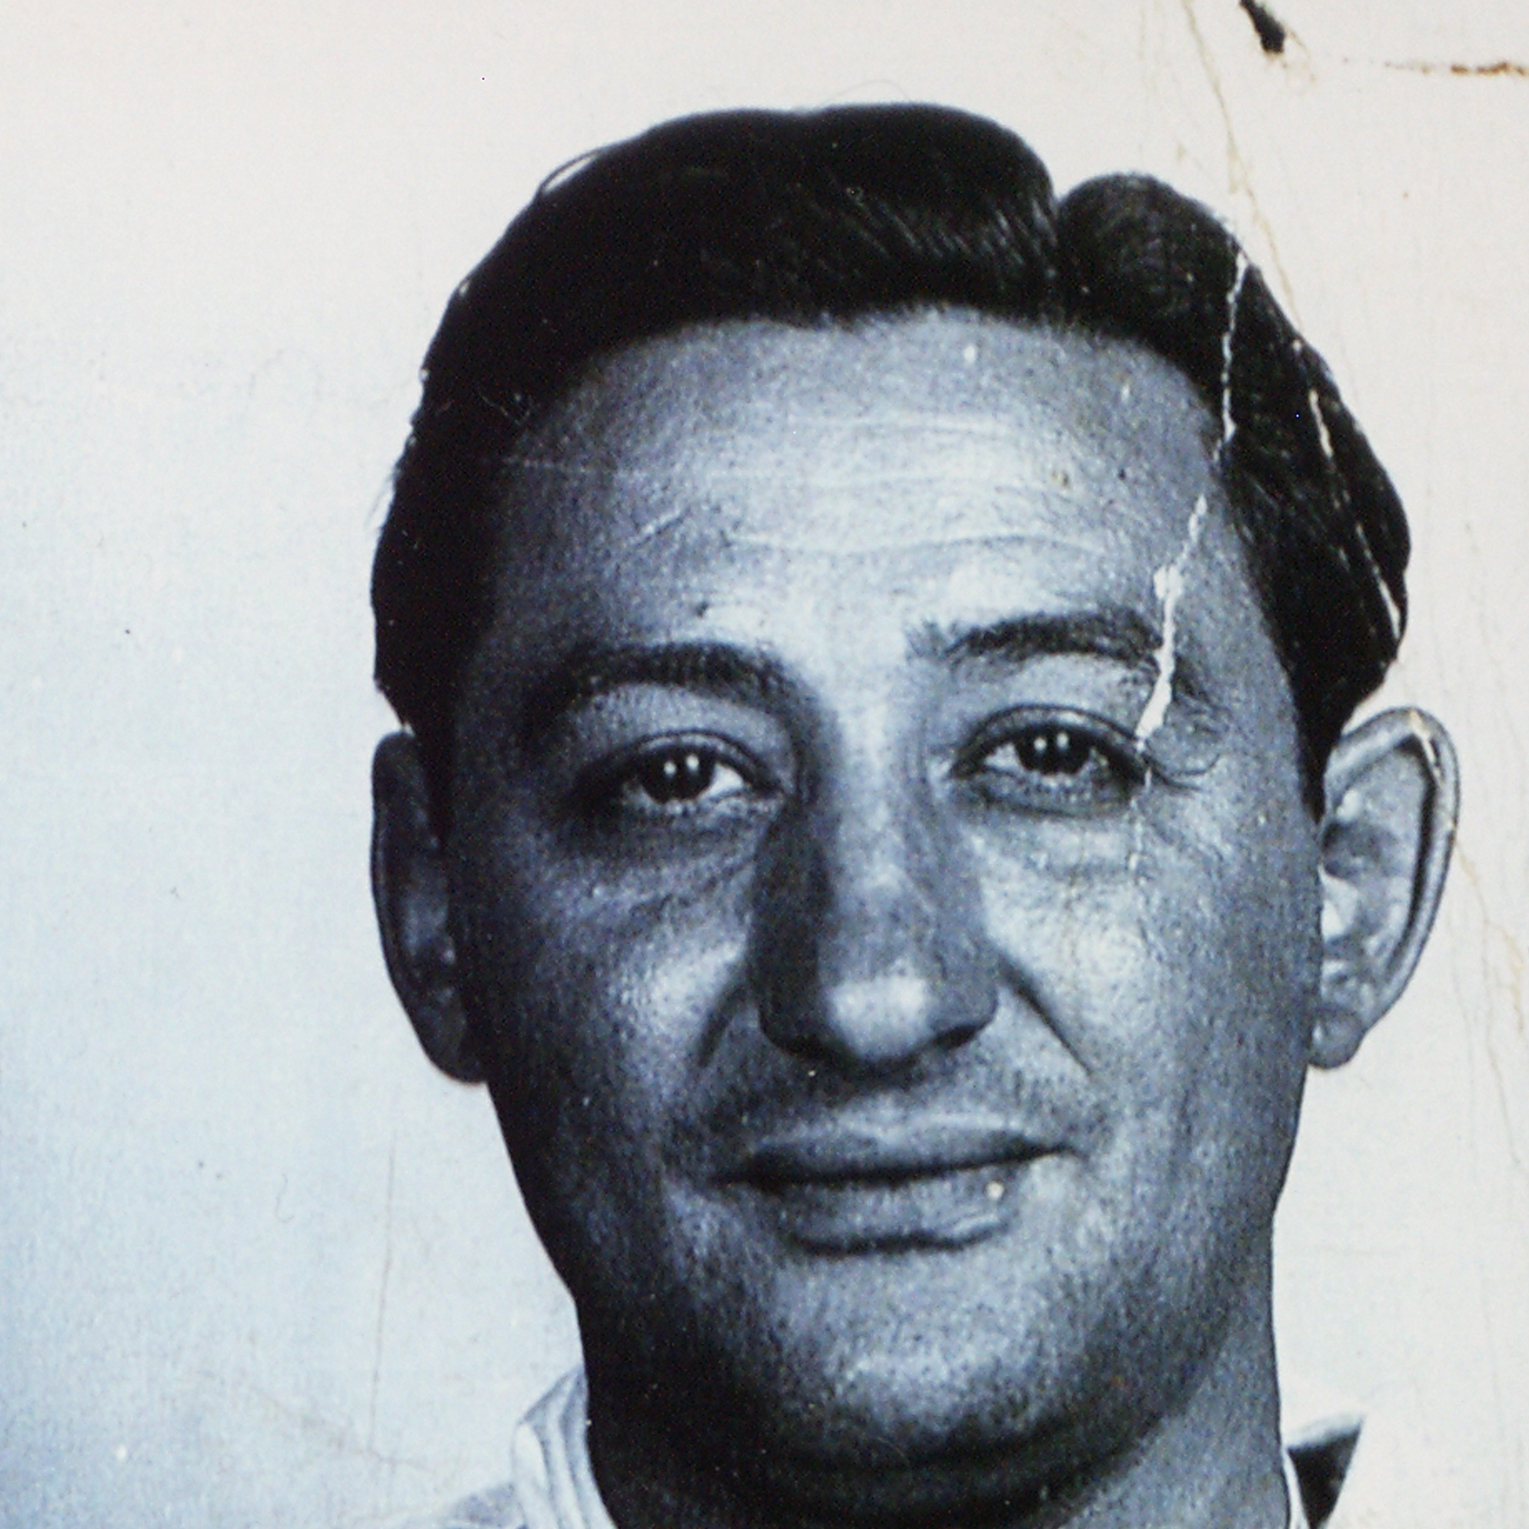 Suspect Thomas Viola's mug shot from the police case file.  Viola was picked up in Tuscon, Arizona in 1945.